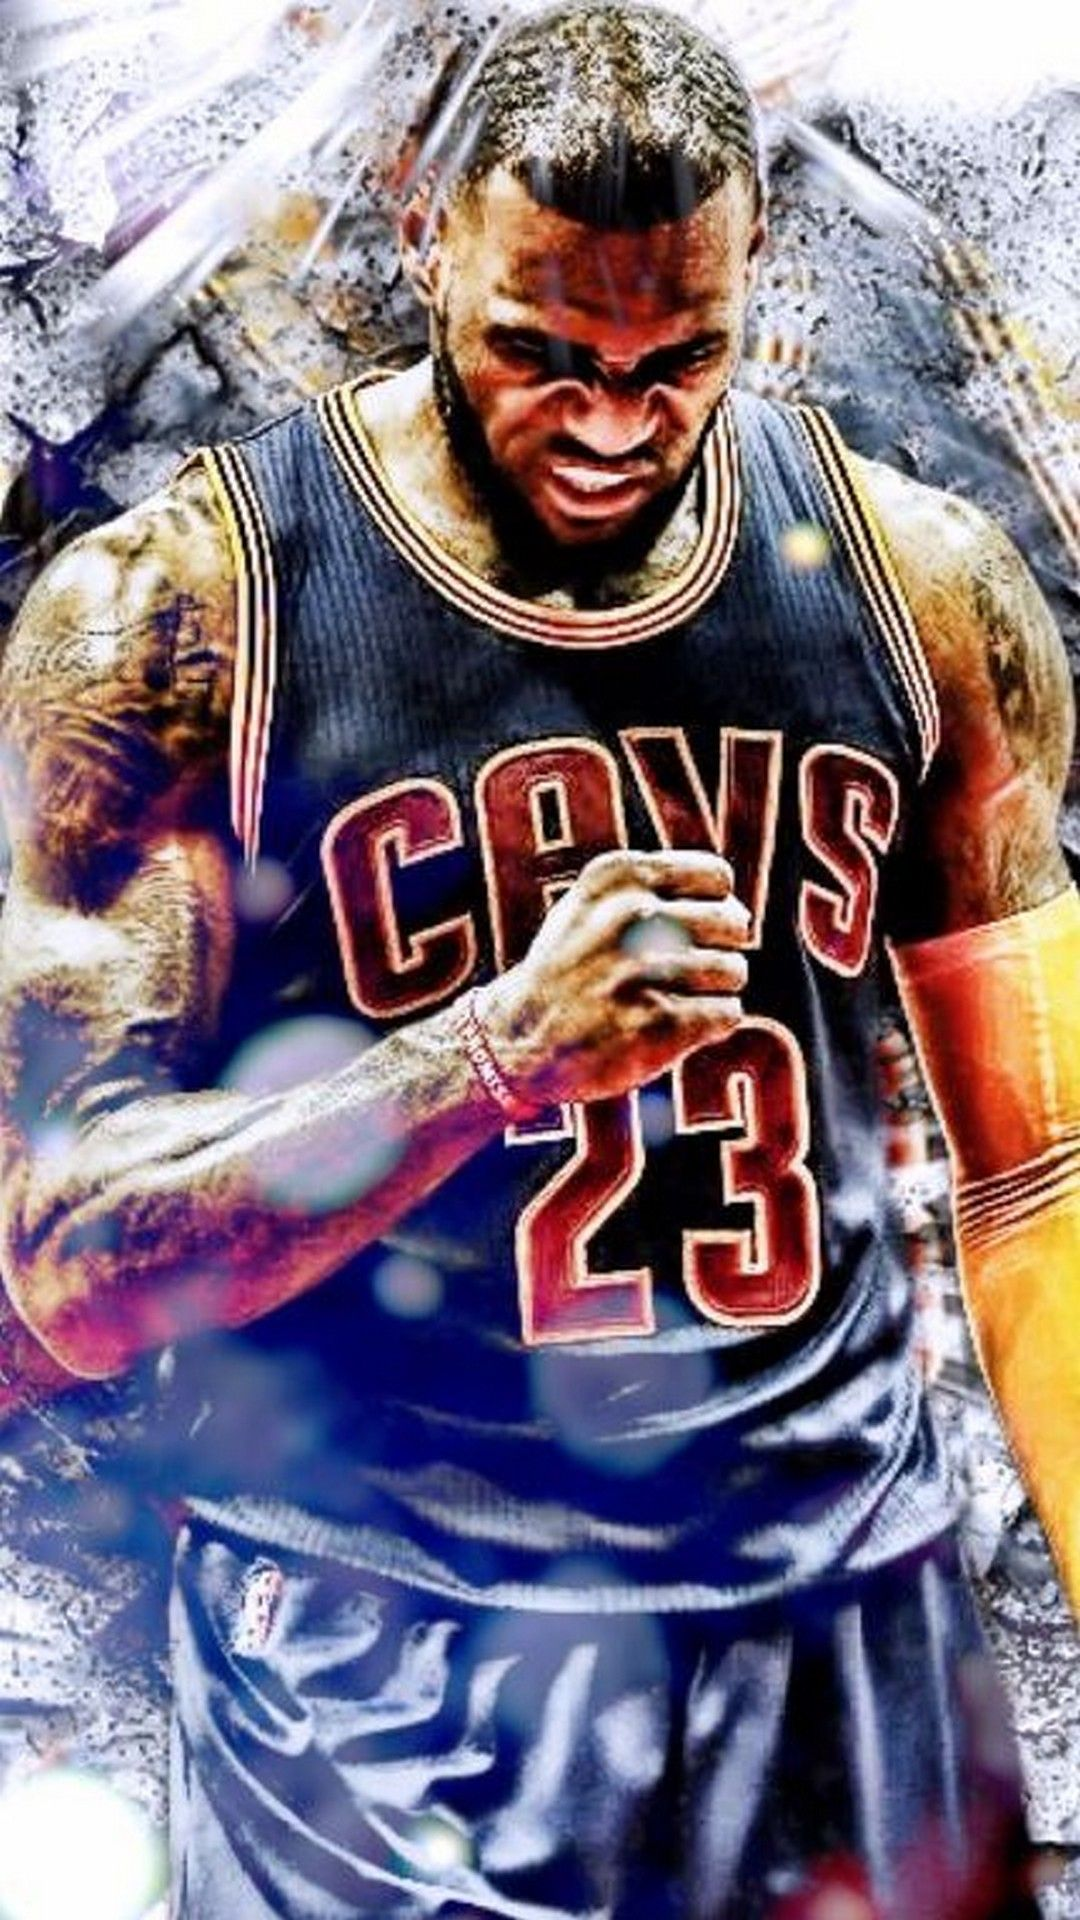 Awesome 9 Lebron James Pictures For Your Android Or Iphone Wallpapers Android Iphone Wa Lebron James Wallpapers Lebron James Cavaliers Lebron James Pictures